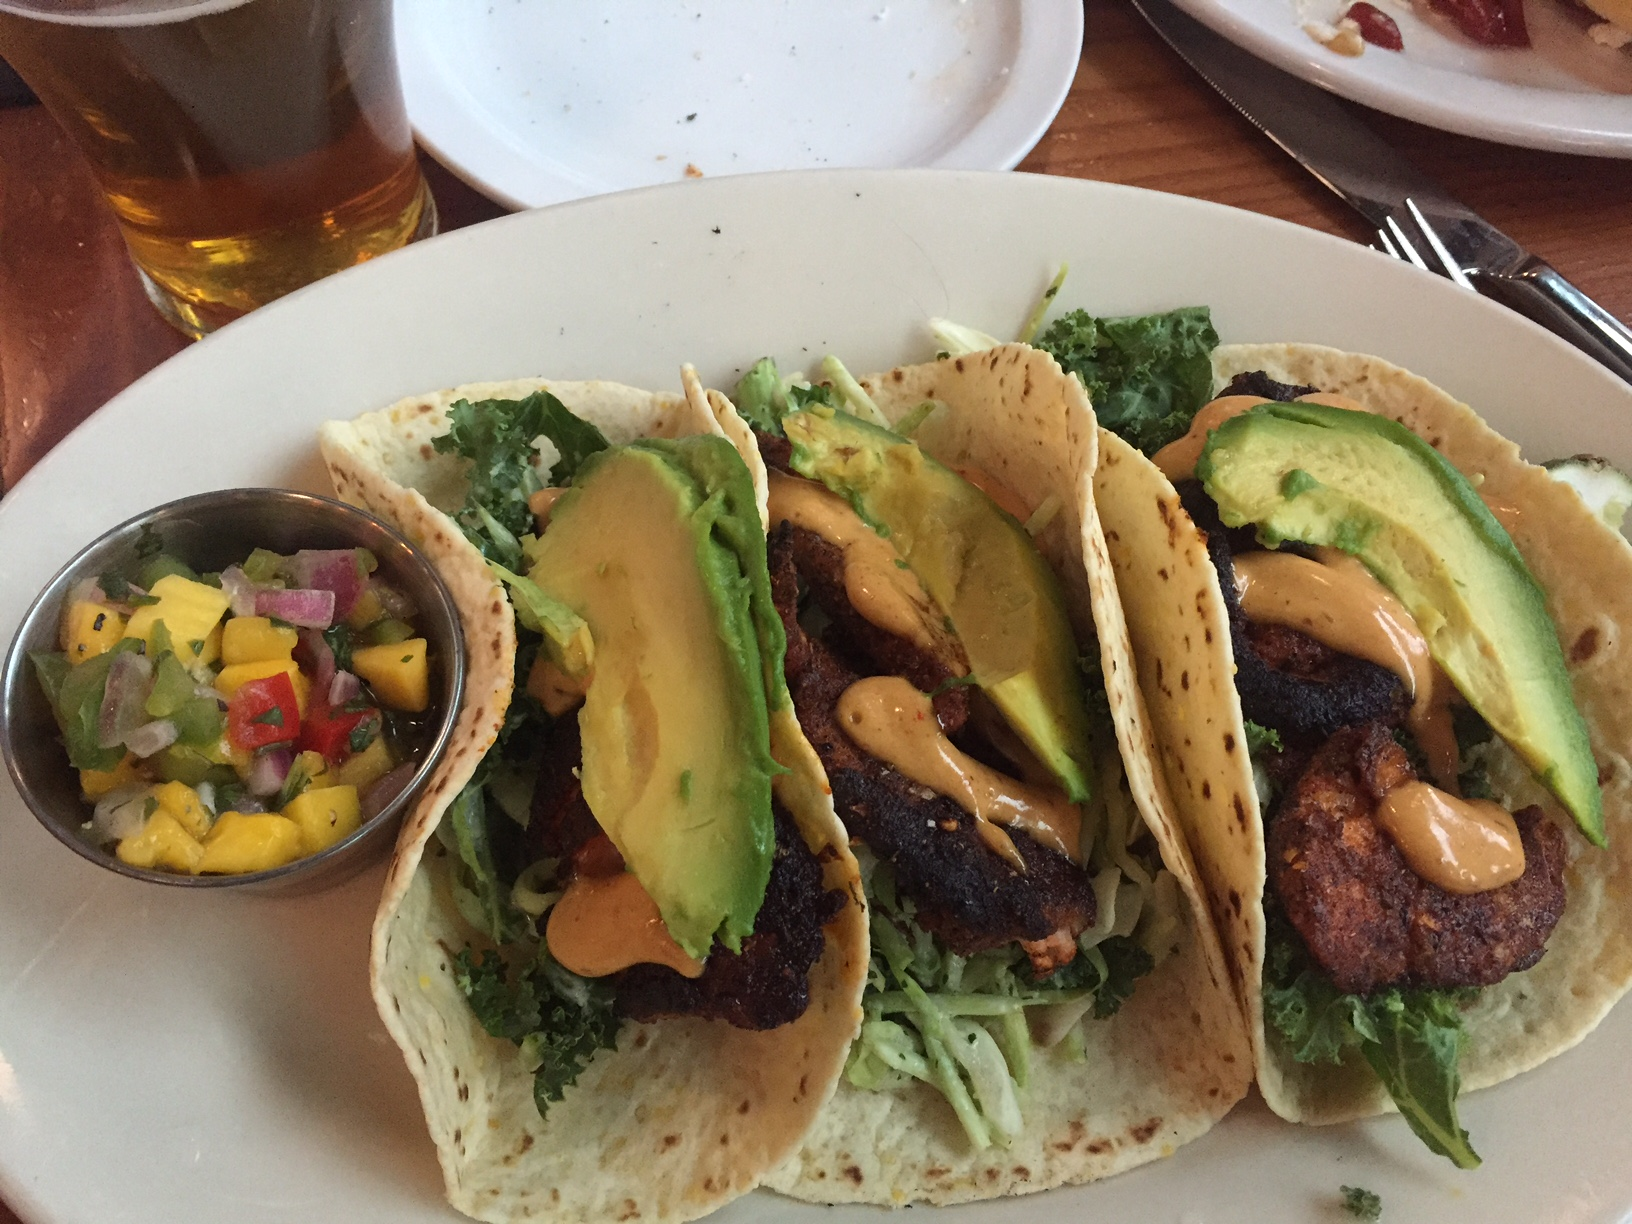 Blackened steelhead tacos at Worthy Brewing.